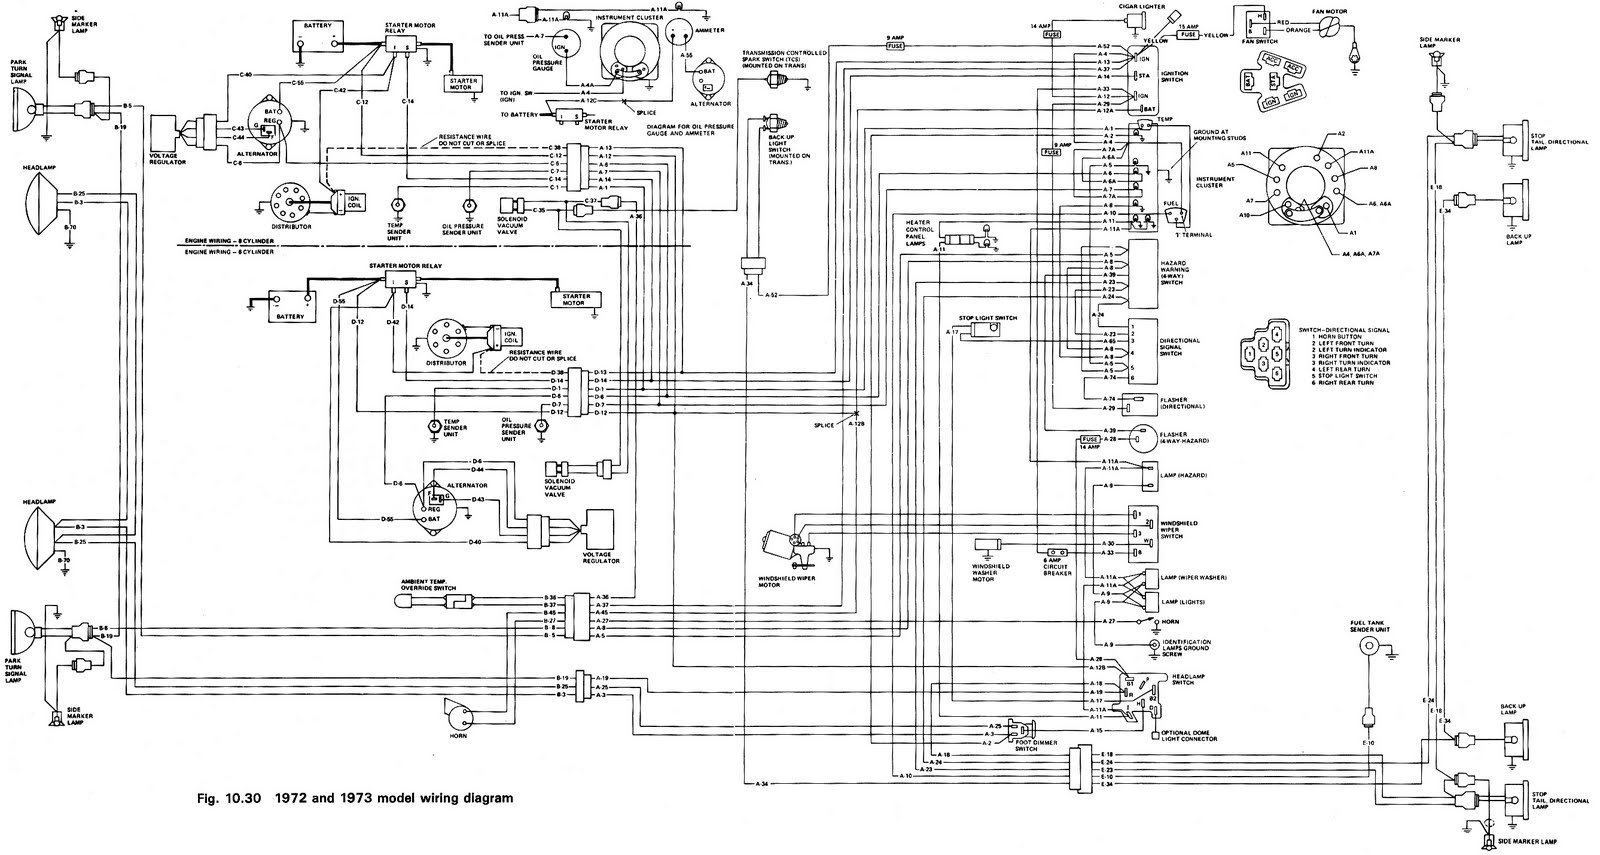 1978 jeep cj wiring diagram 2002 mazda protege5 engine 66 cj5 ke auto